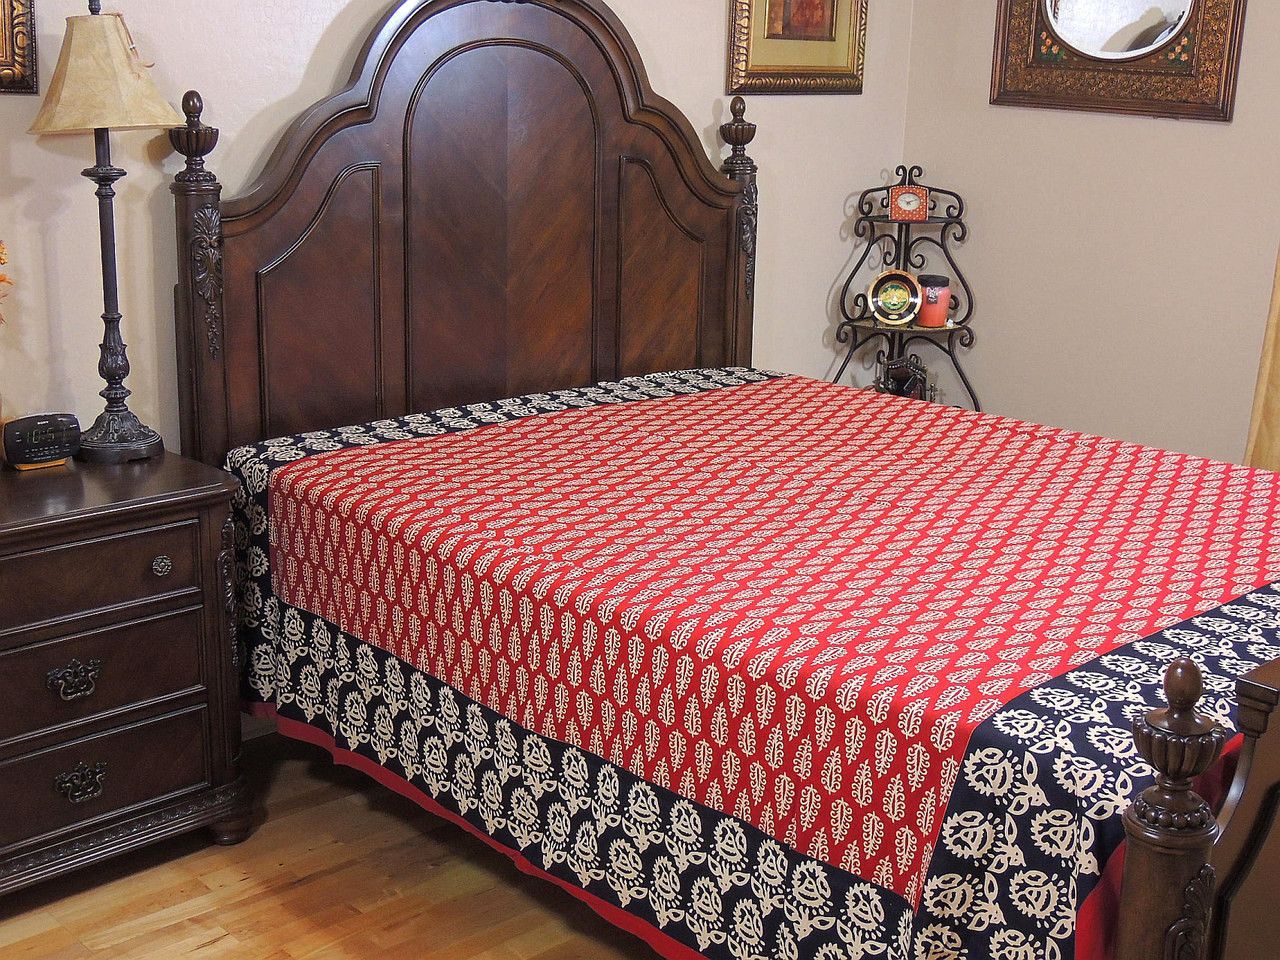 Black and red bed sheets - Paisley Cotton Flat Bed Sheet Red Black Block Print Handicraft Bedding Linens Queen